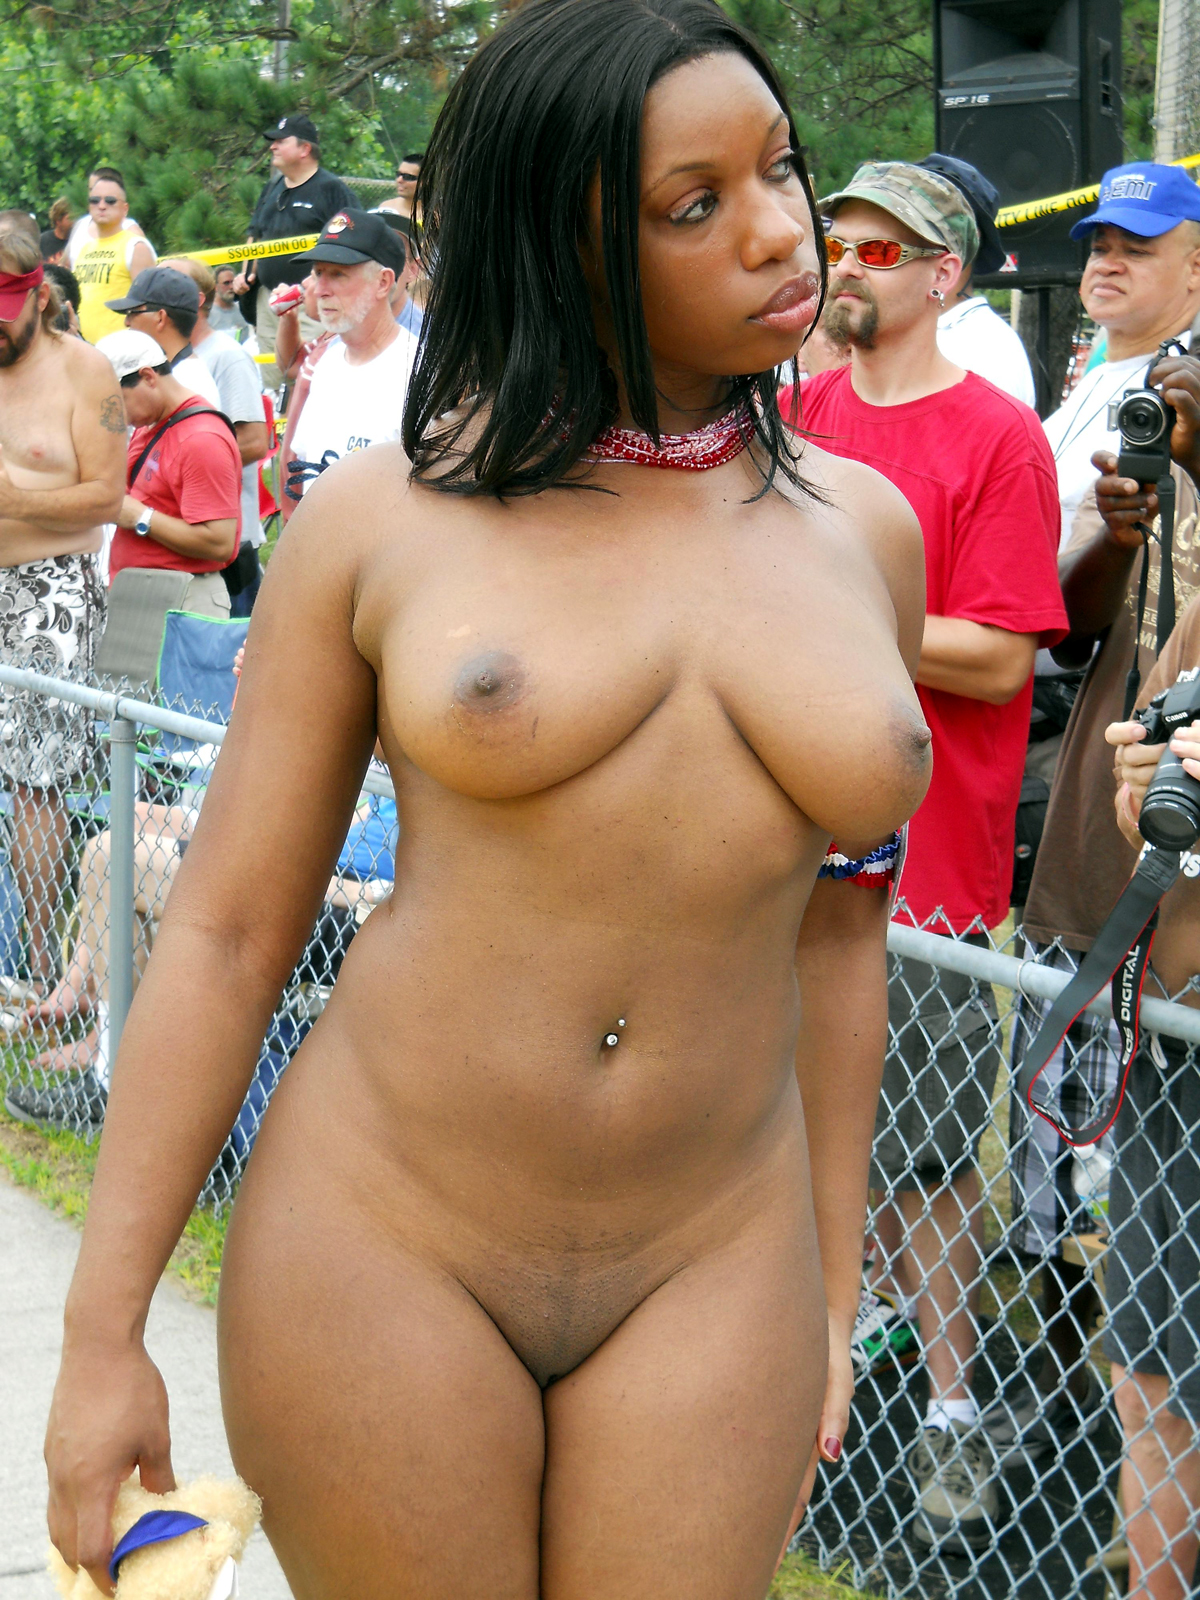 Nude photo girl afrika where can